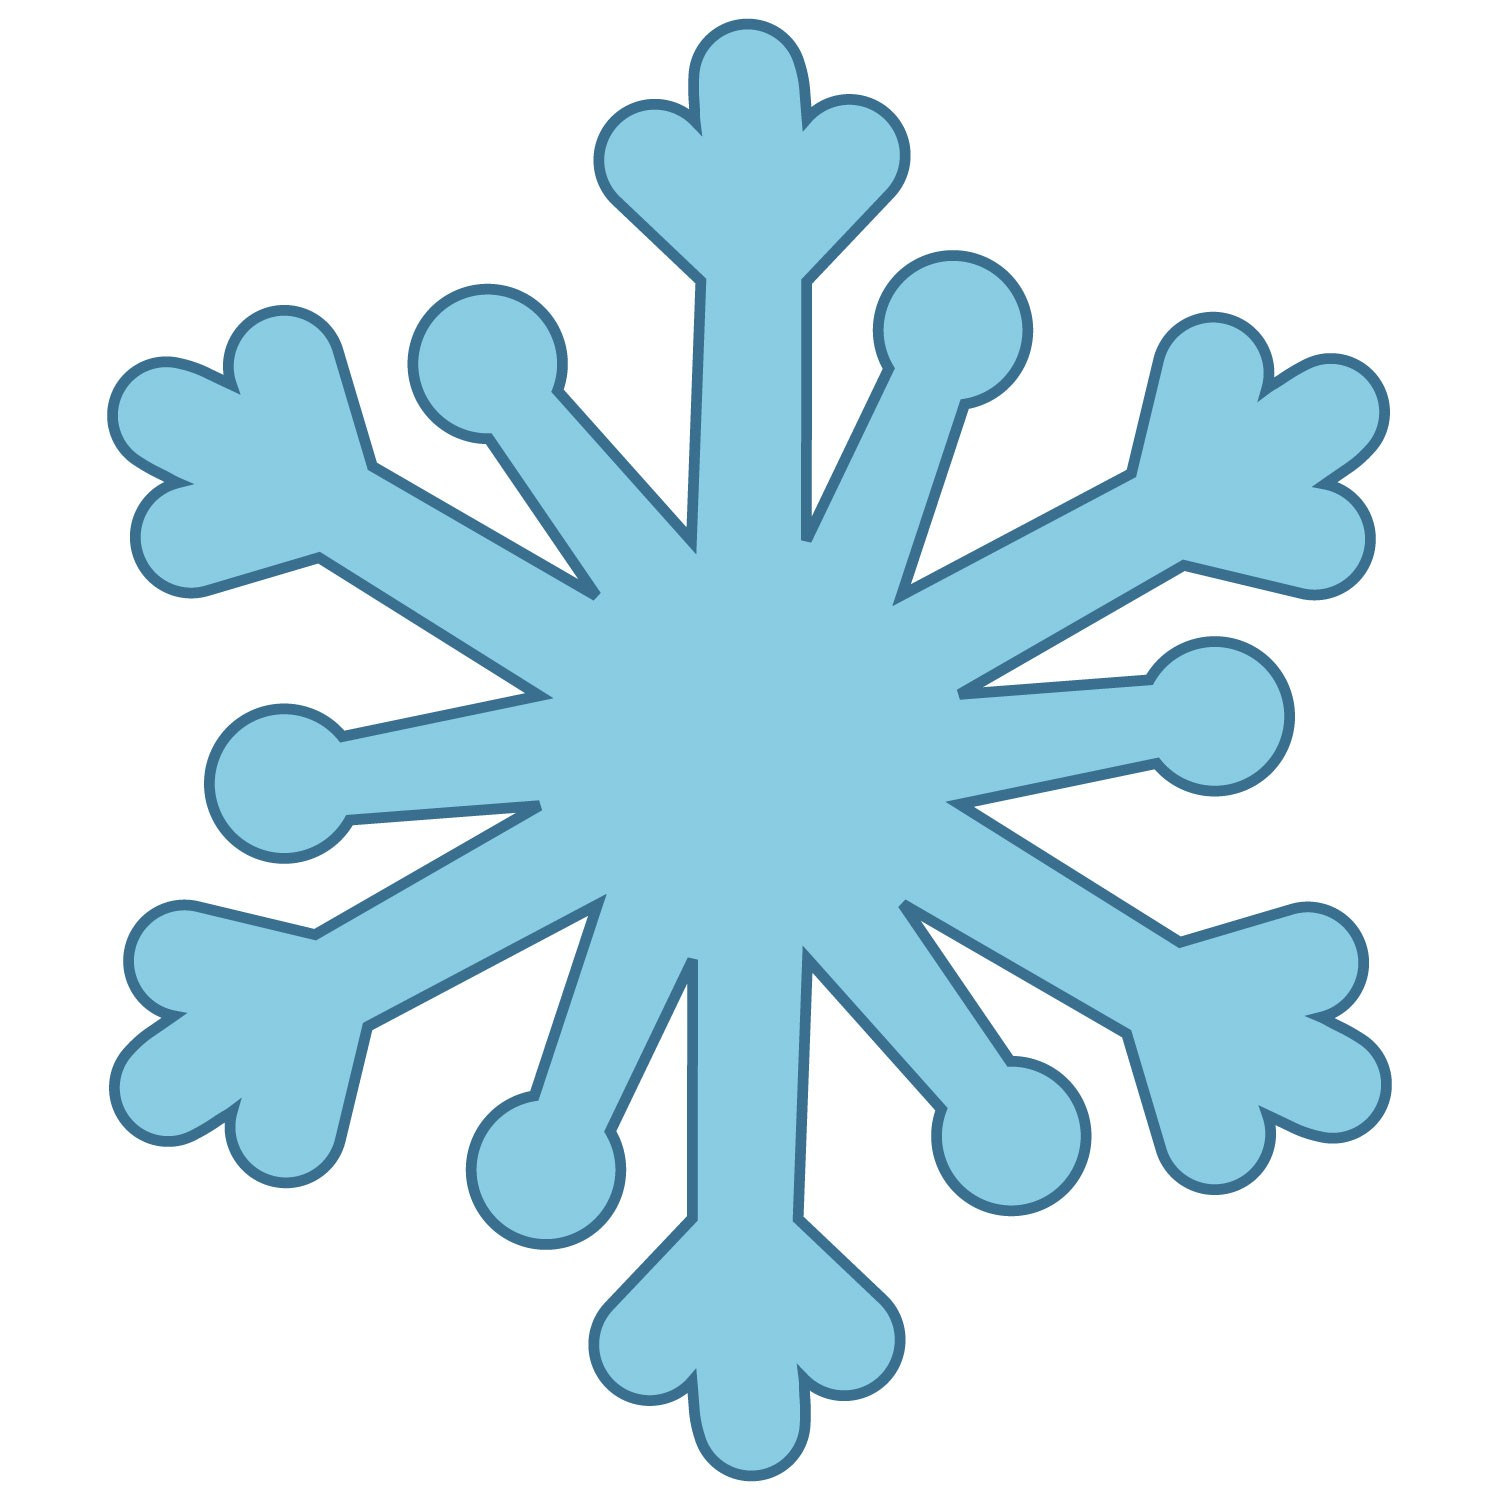 Simple snowflake clipart 5